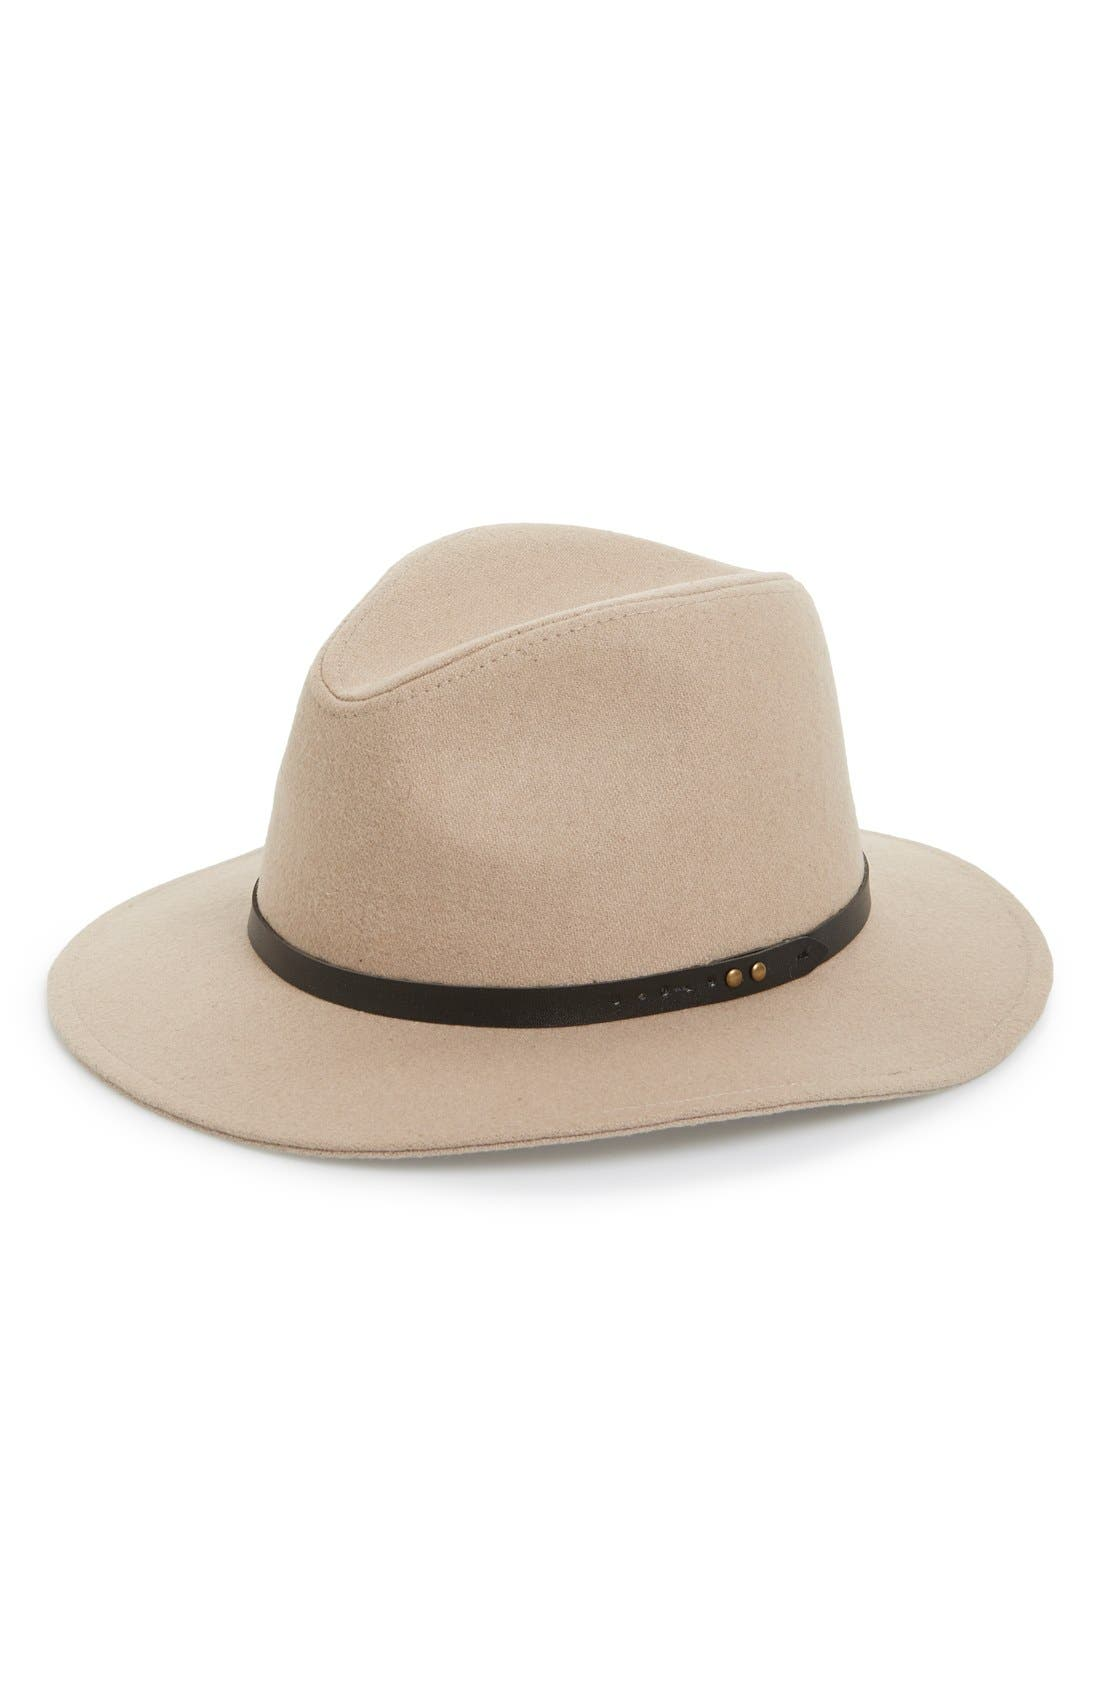 Main Image - Phase 3 Rivet Fedora